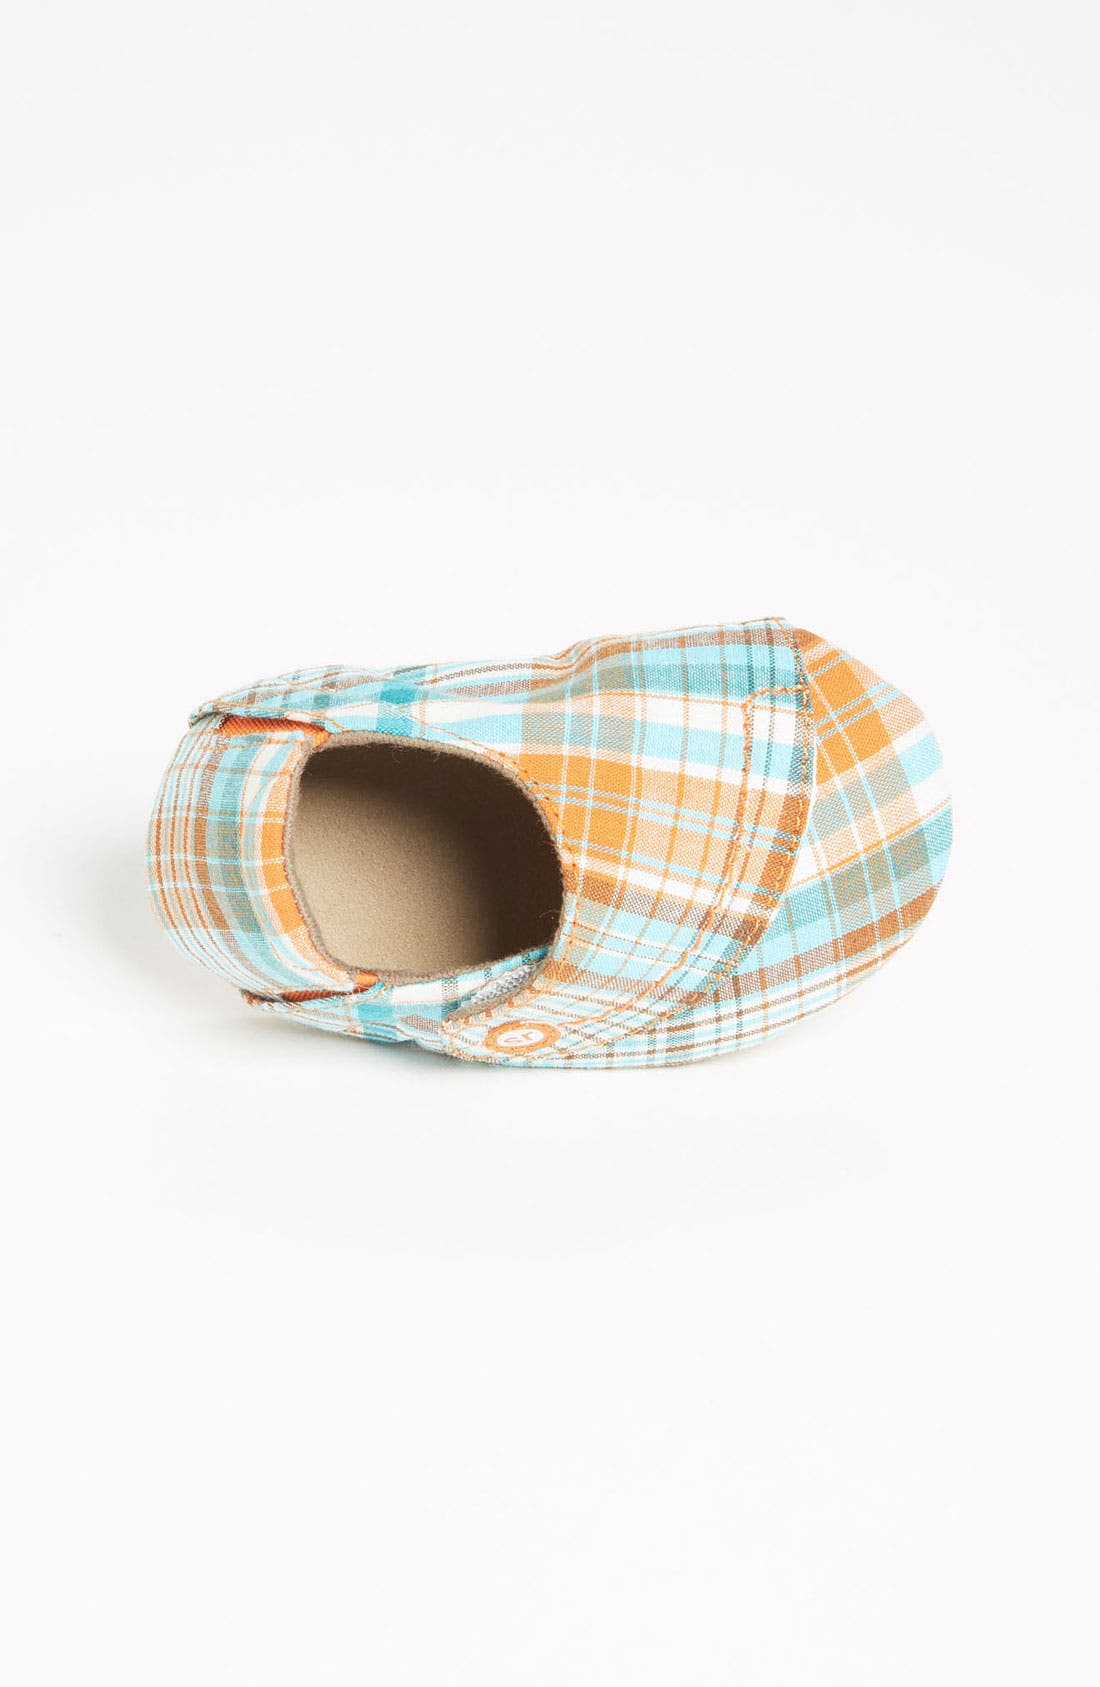 Alternate Image 3  - Stride Rite 'Mad For Plaid' Crib Shoe (Baby)